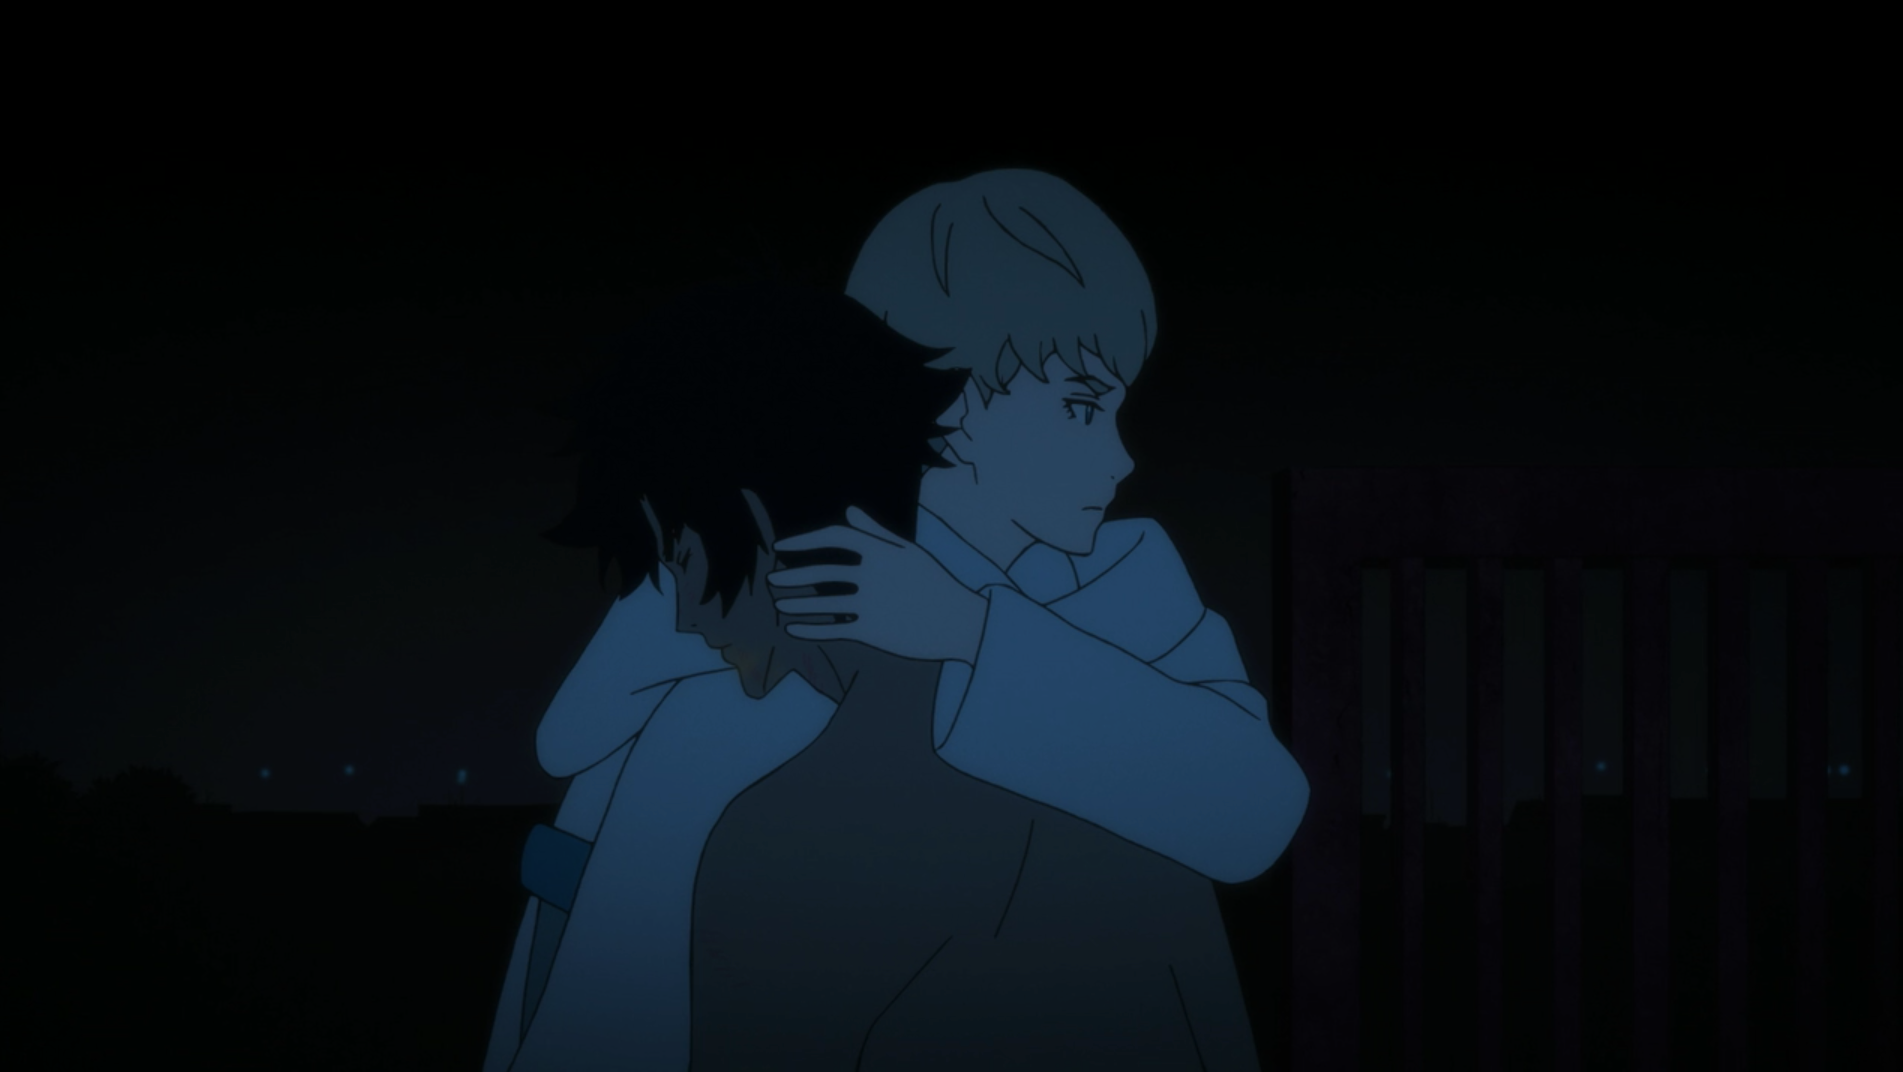 Devilman Crybaby Makes A Stunning Case For And Against Humanity